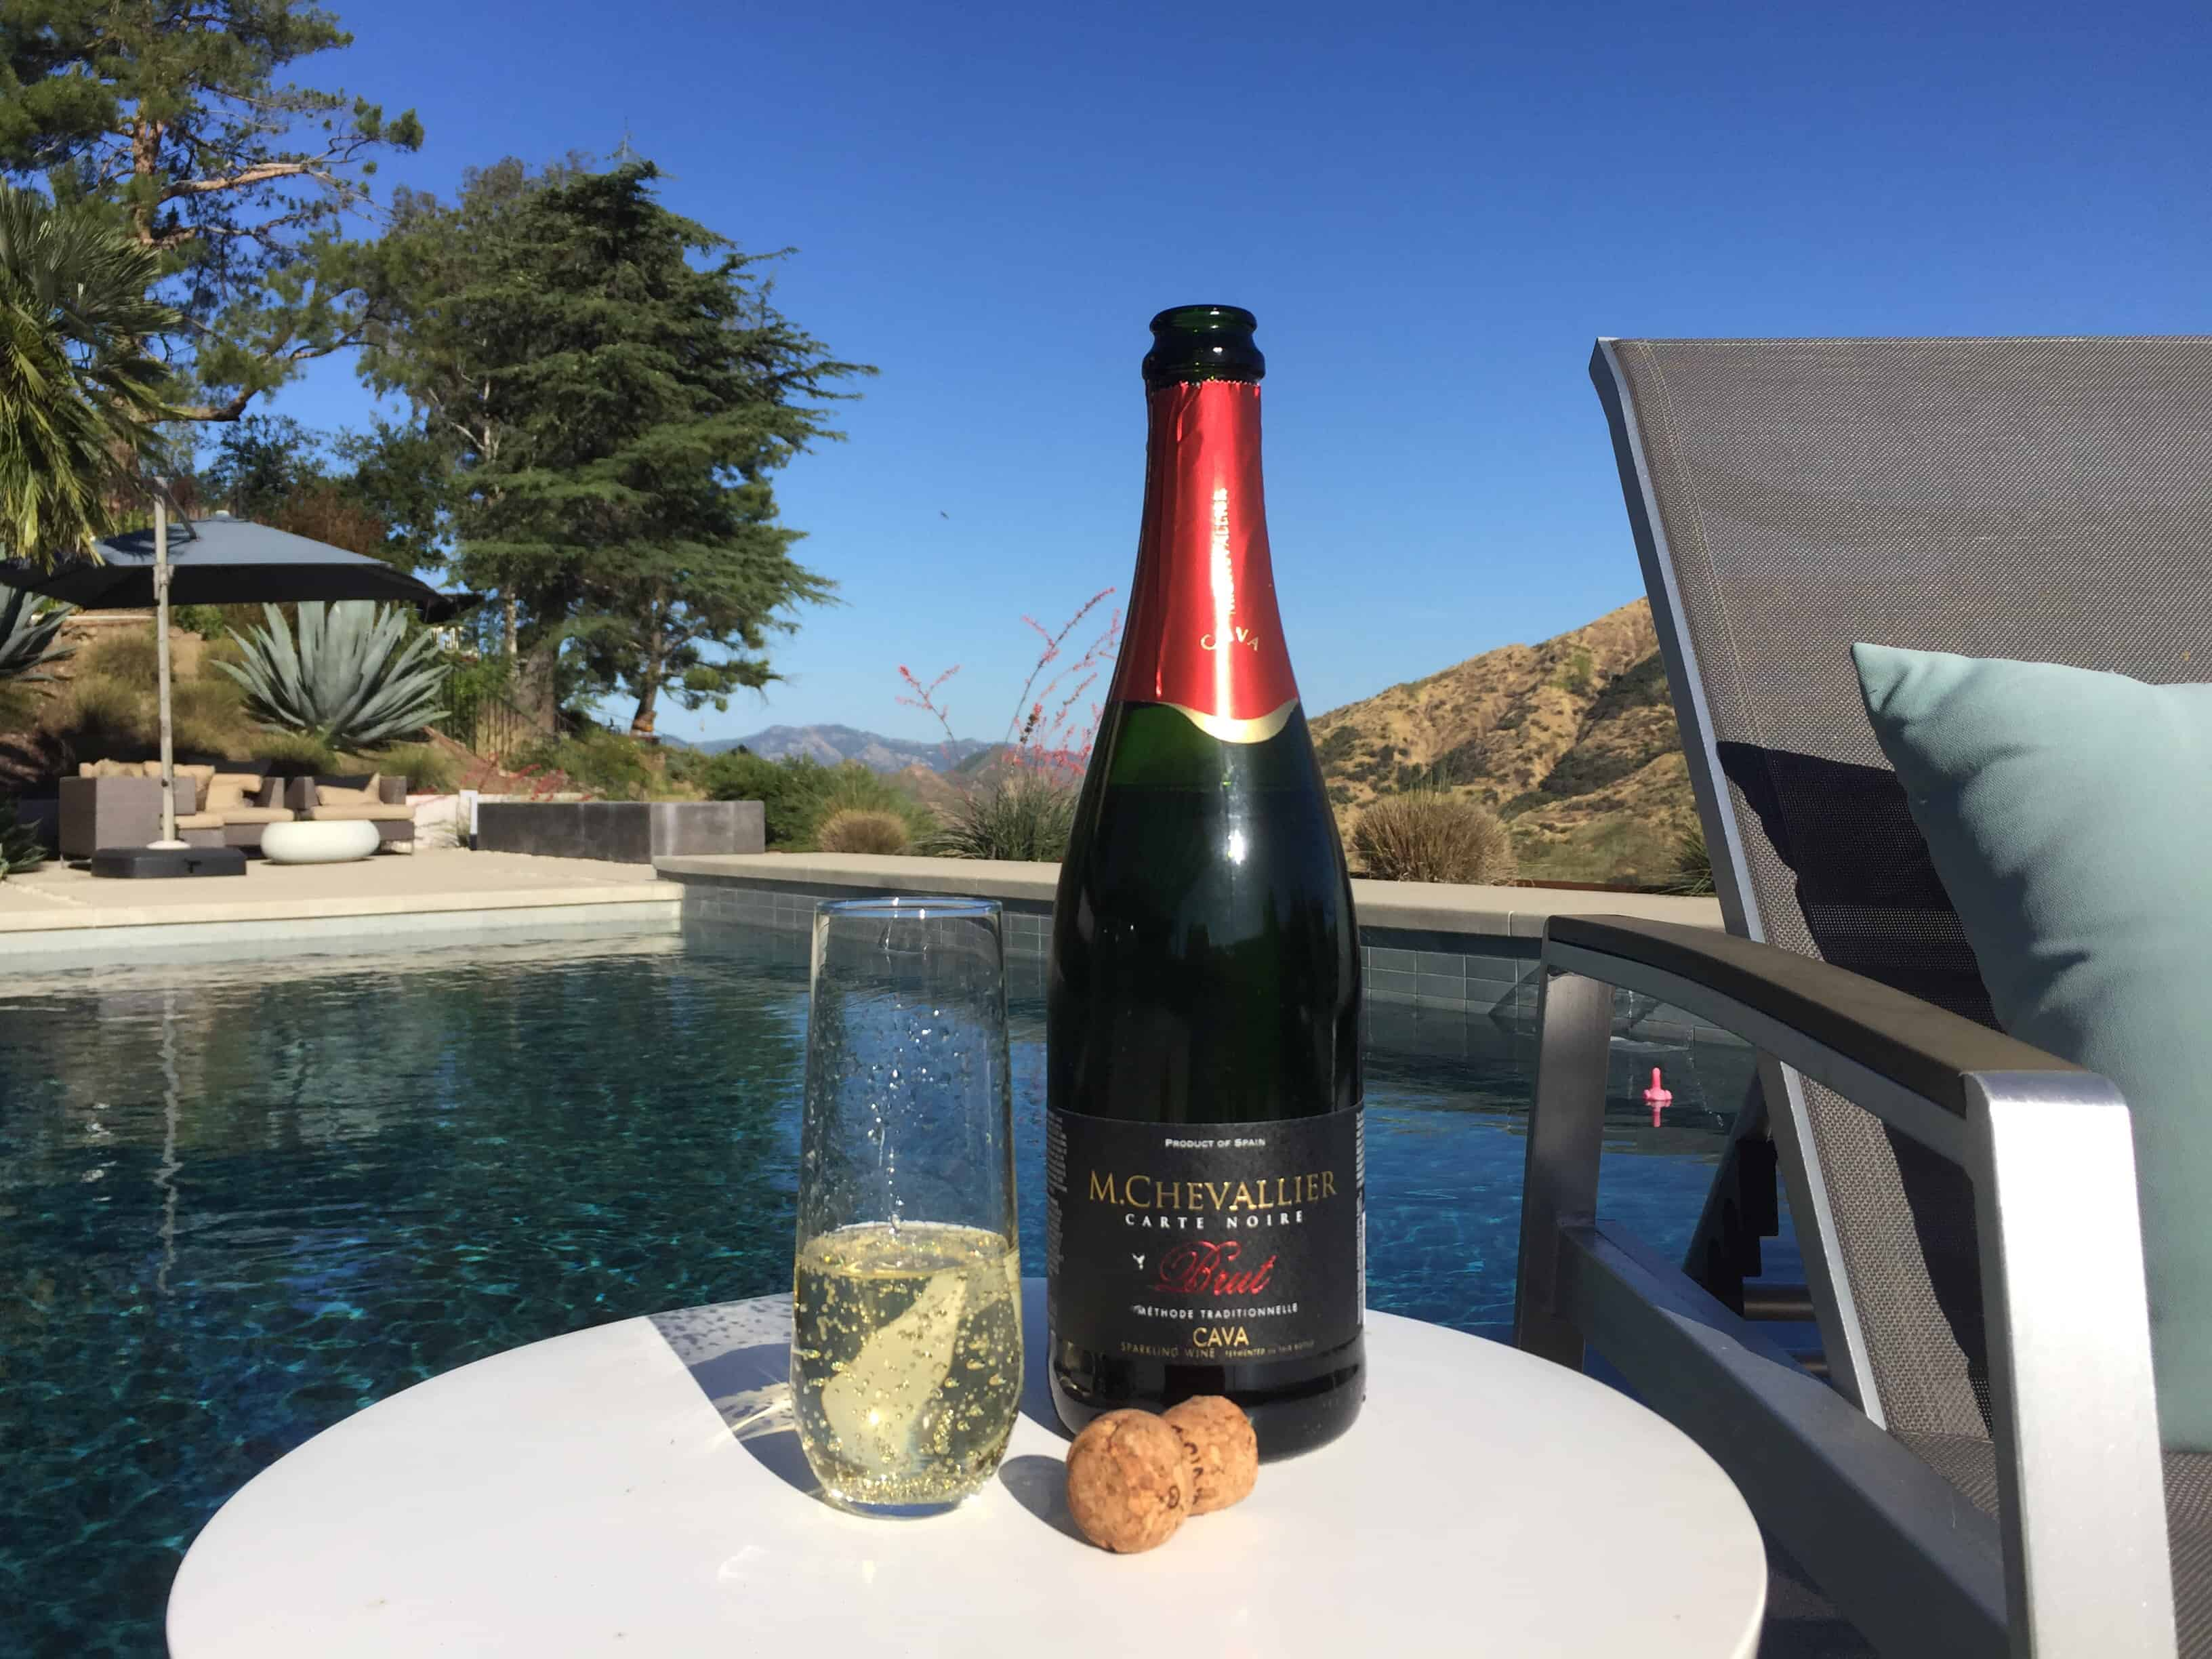 Bottle and glass of M. Chevallier Cava from Trader Joe's